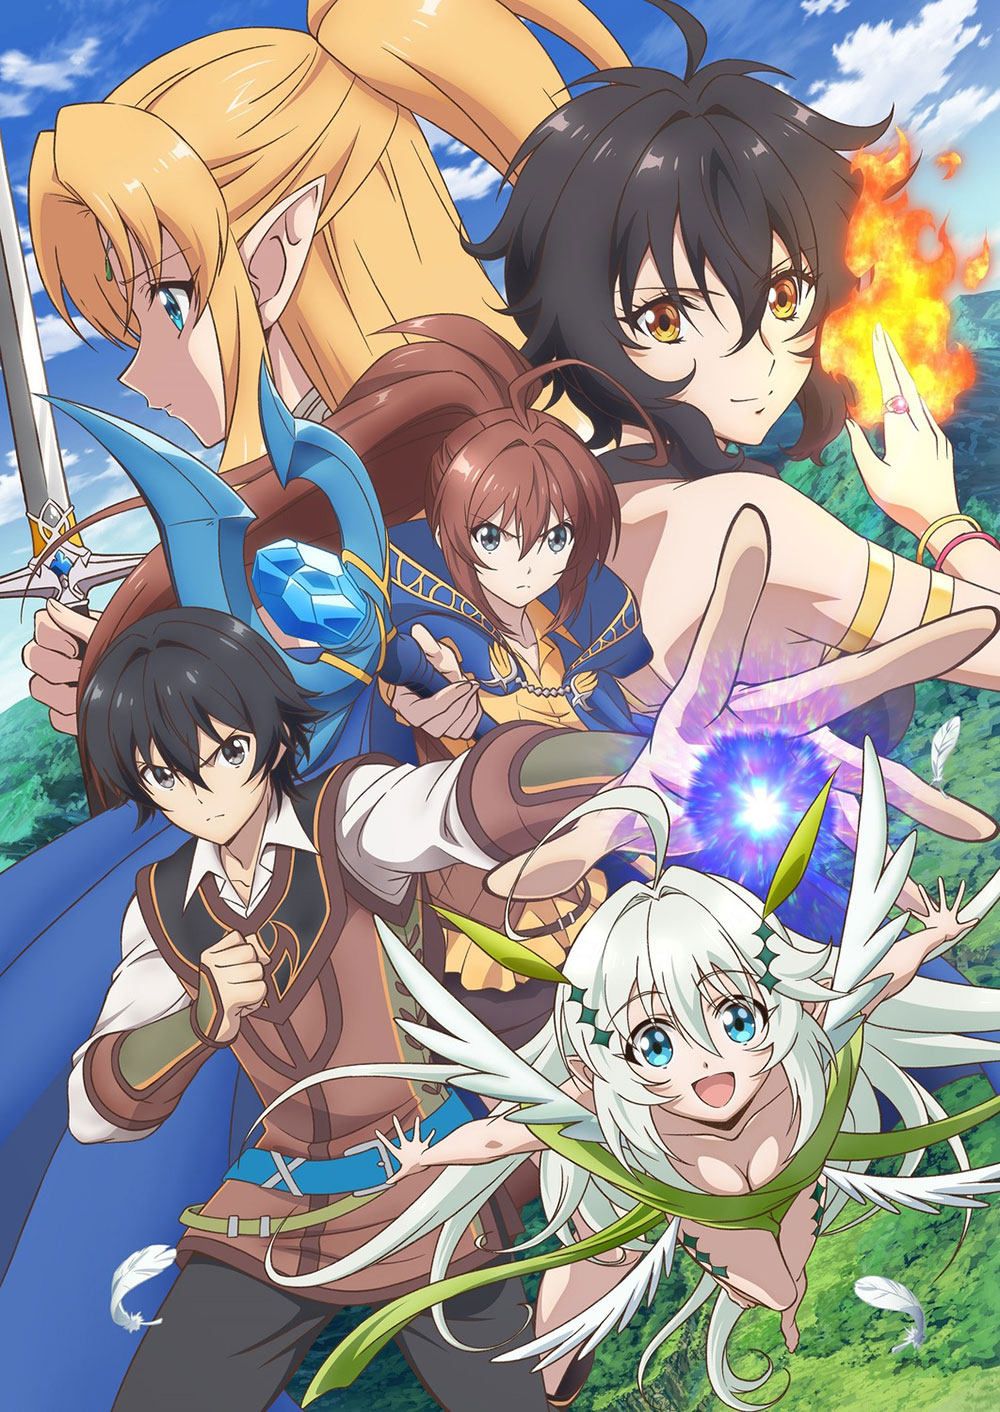 Isekai-Cheat-Magician-Anime-Visual